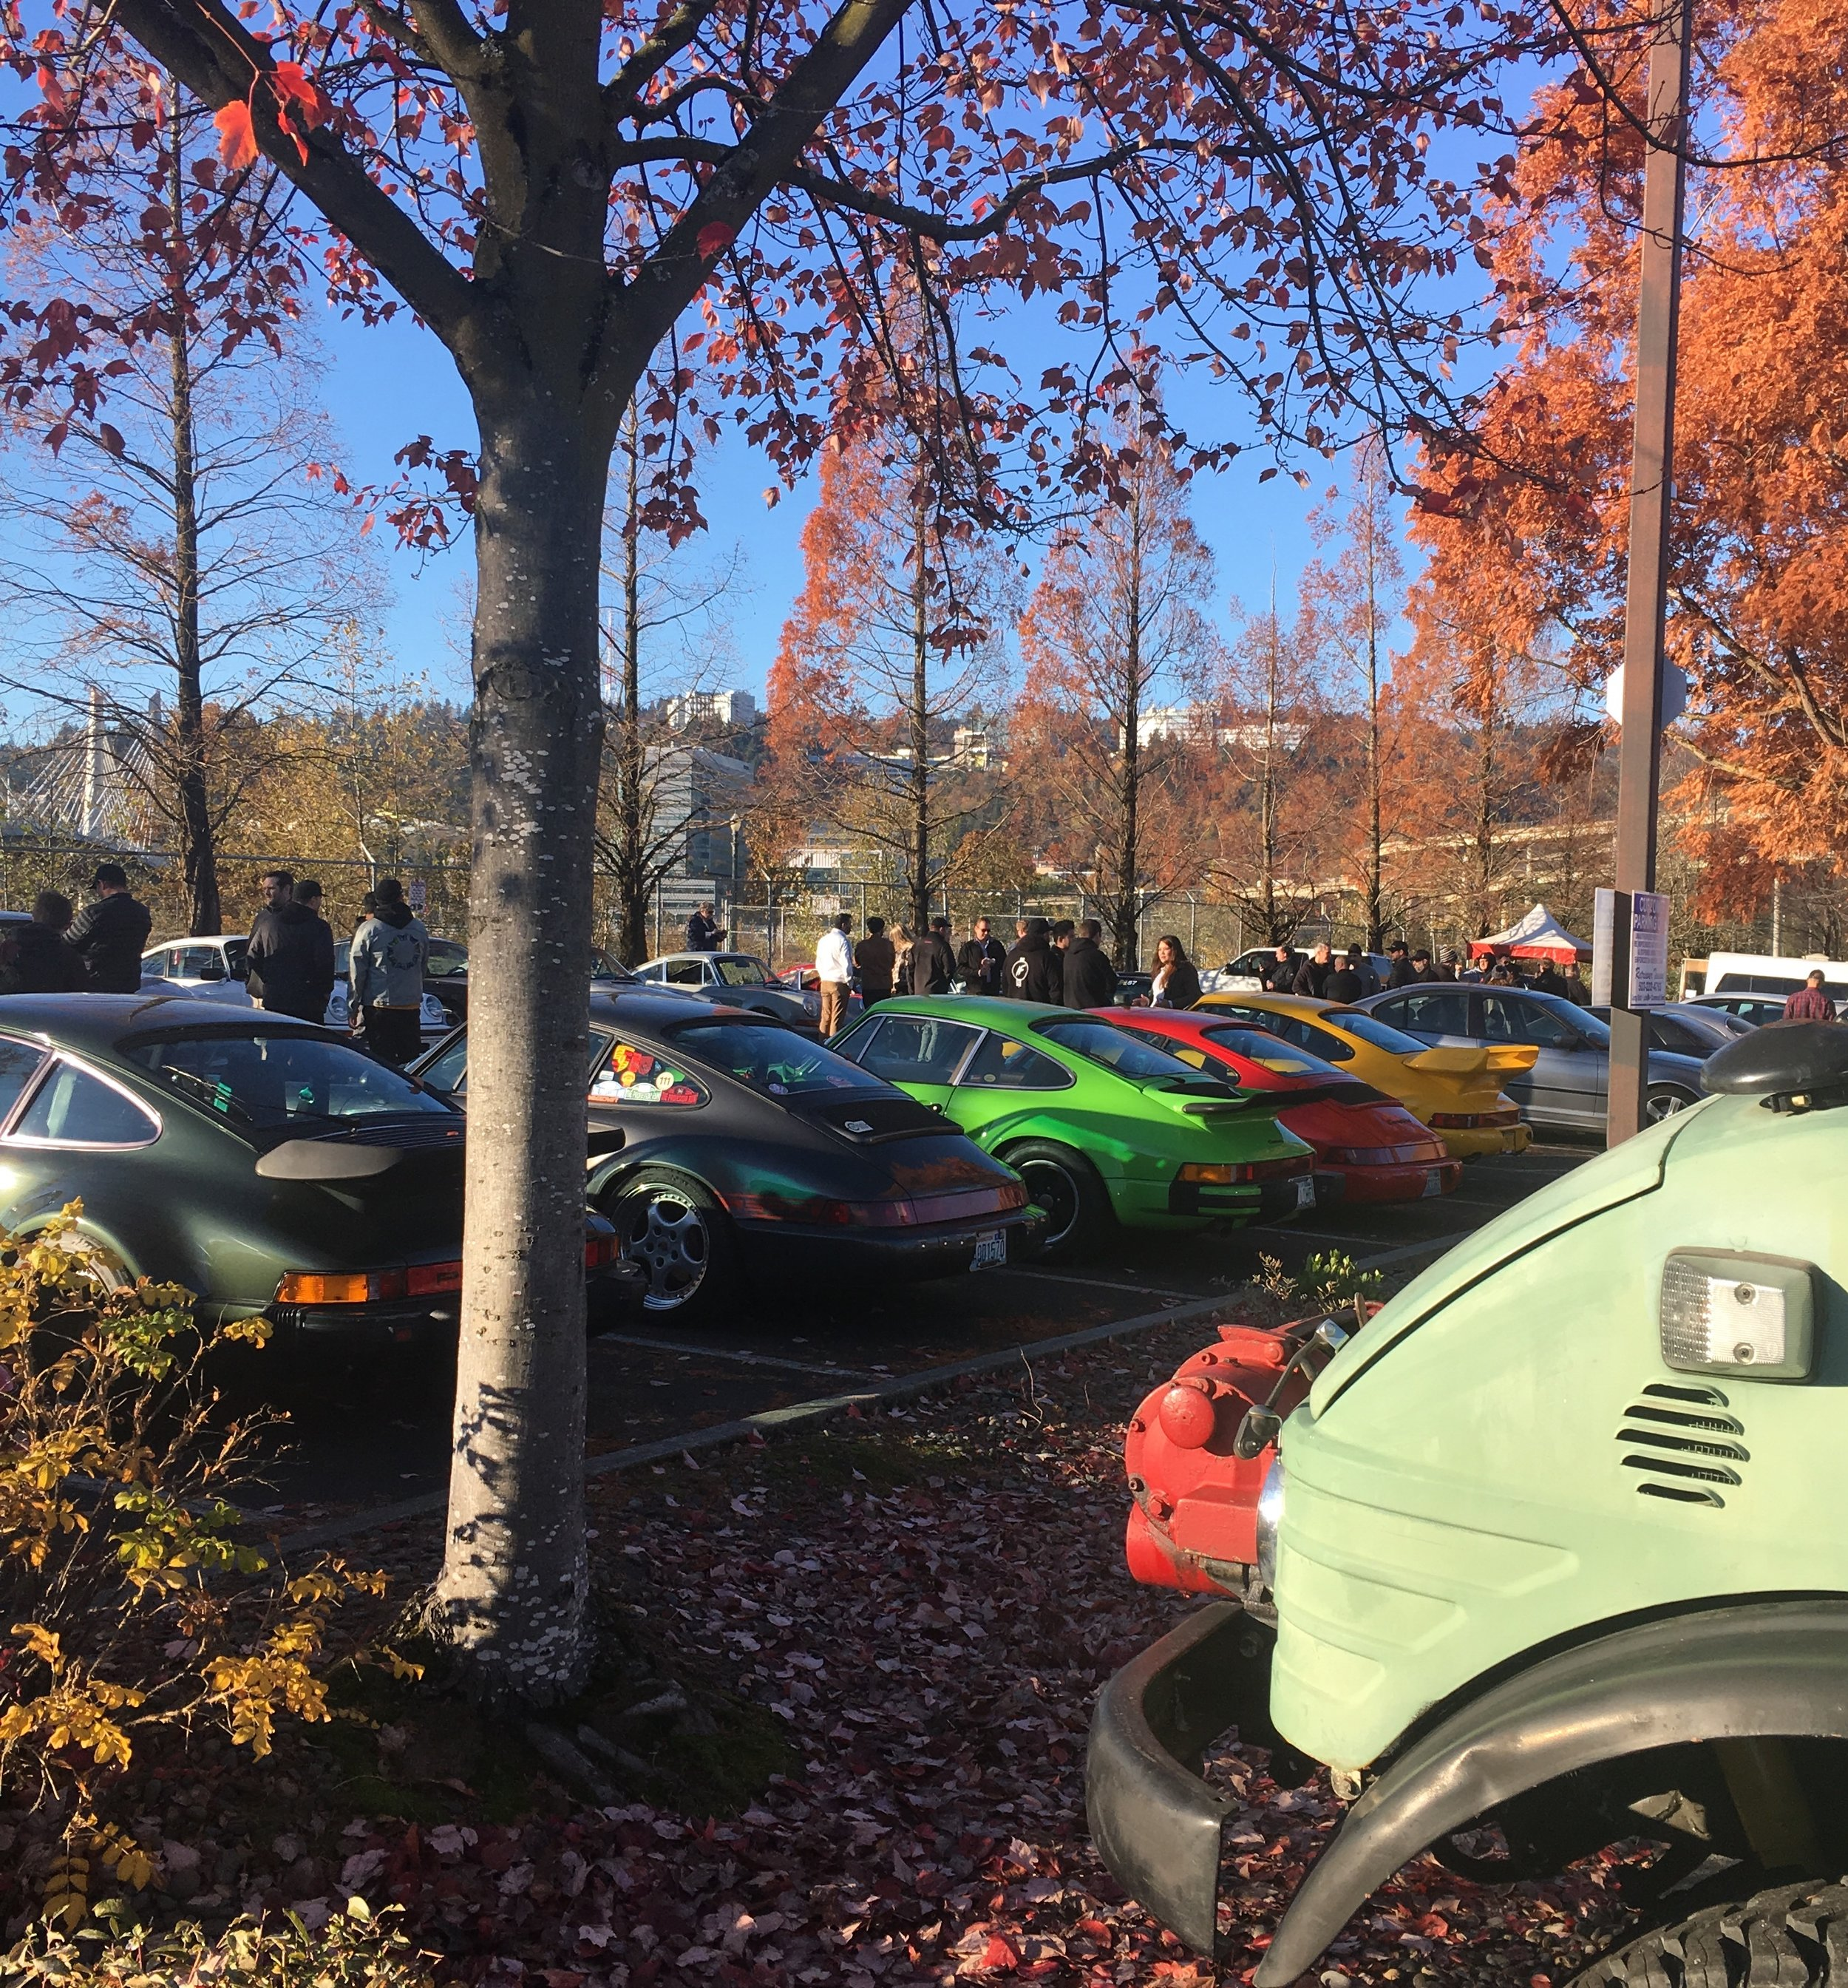 A gathering of Porsches